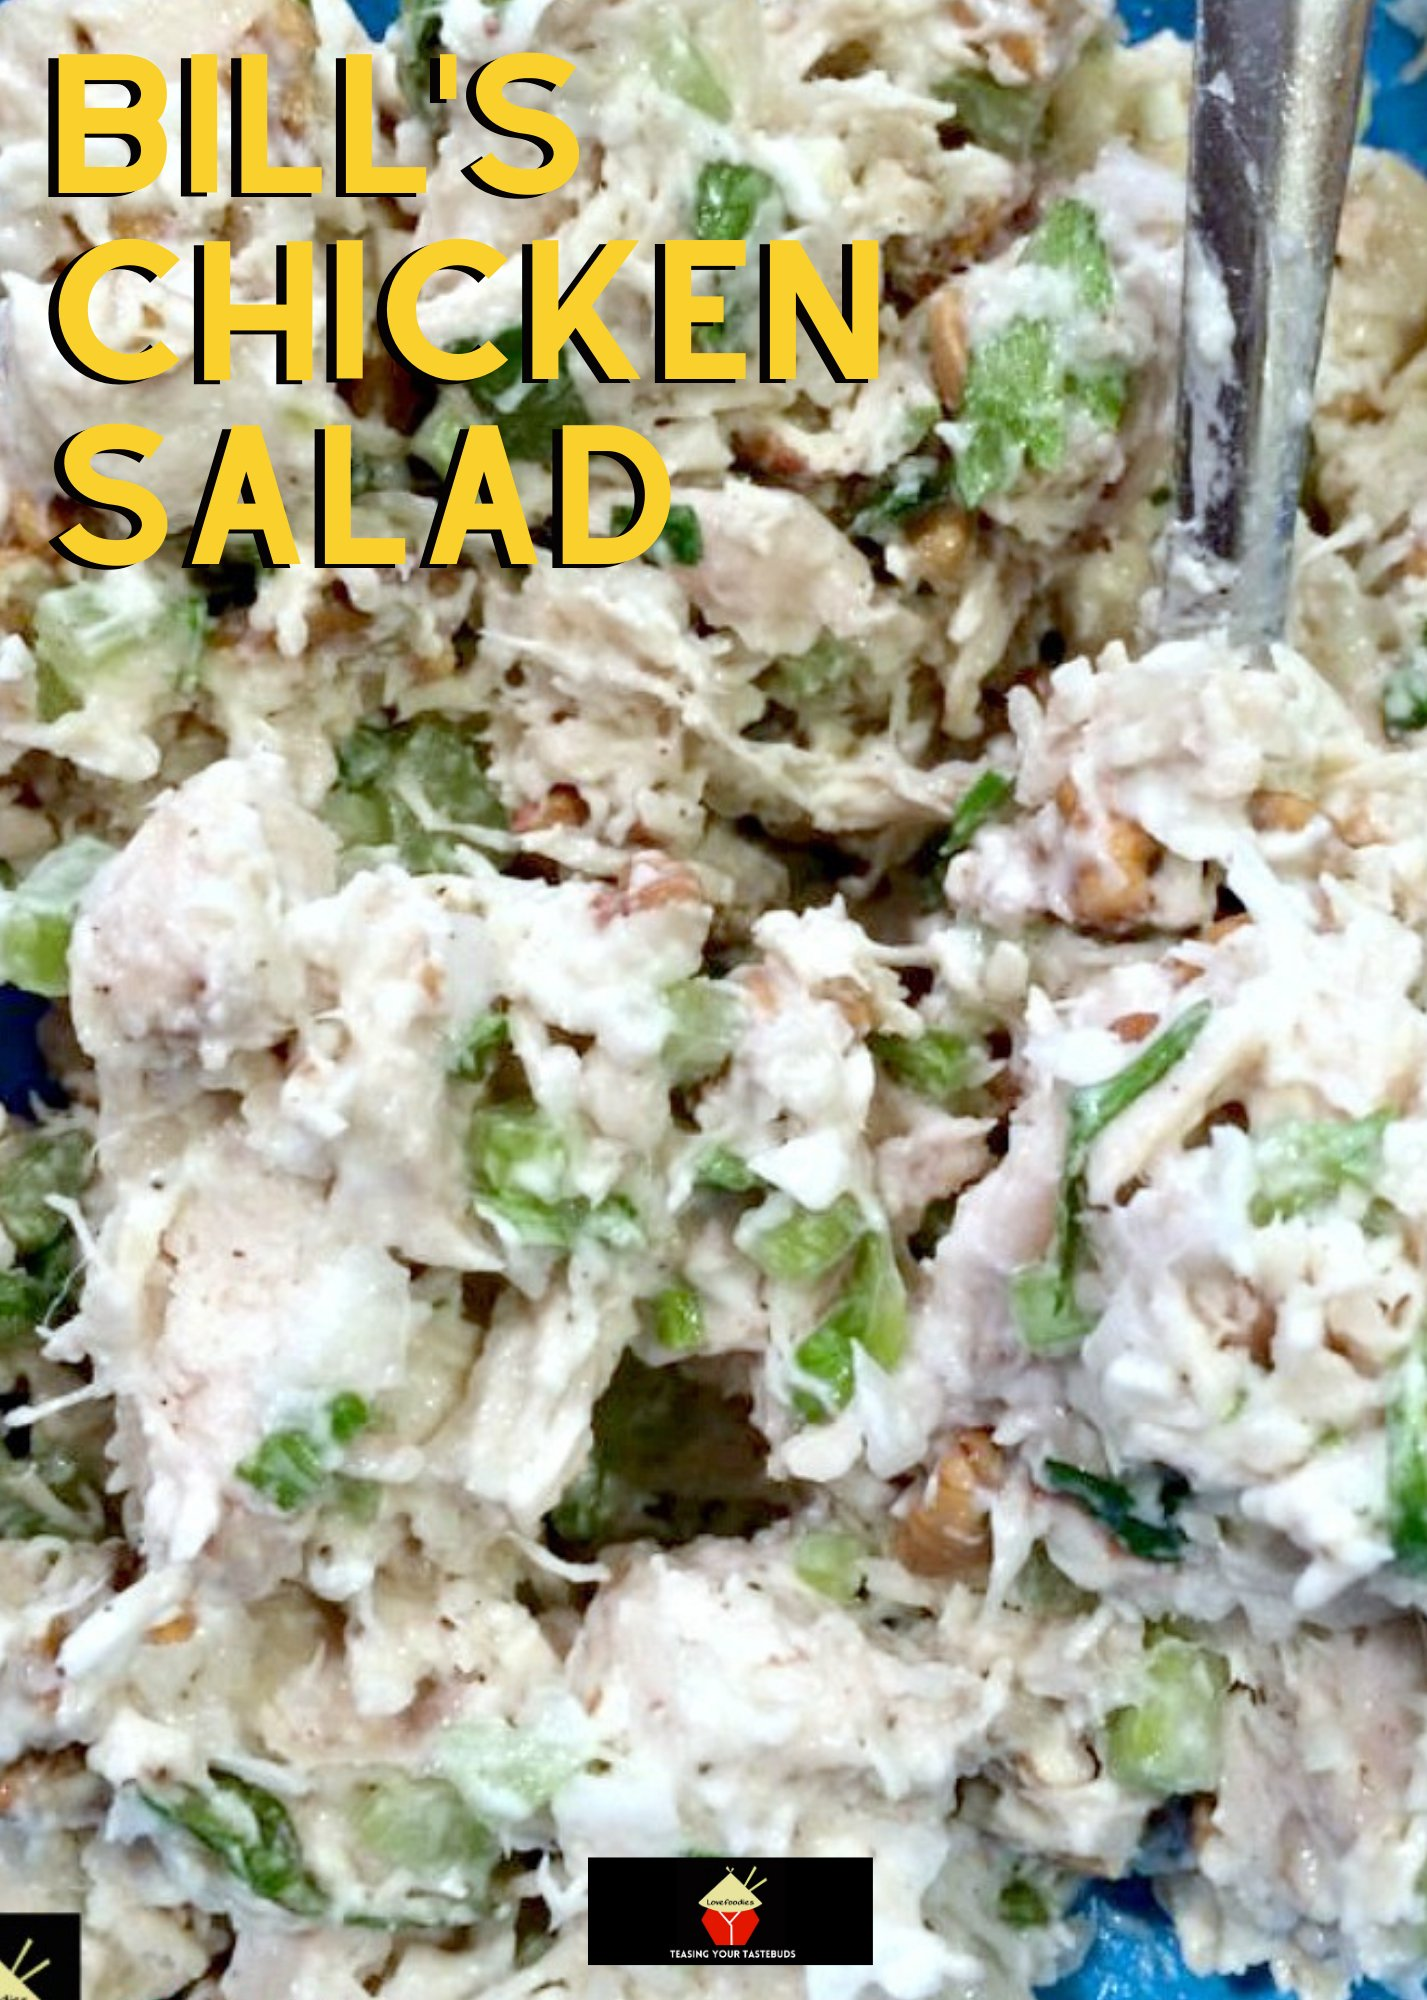 Bill's Chicken Salad is a great family recipe, very easy to make and great tasting. Serve in lettuce wraps, sandwiches, on it's own, the sky's the limit!